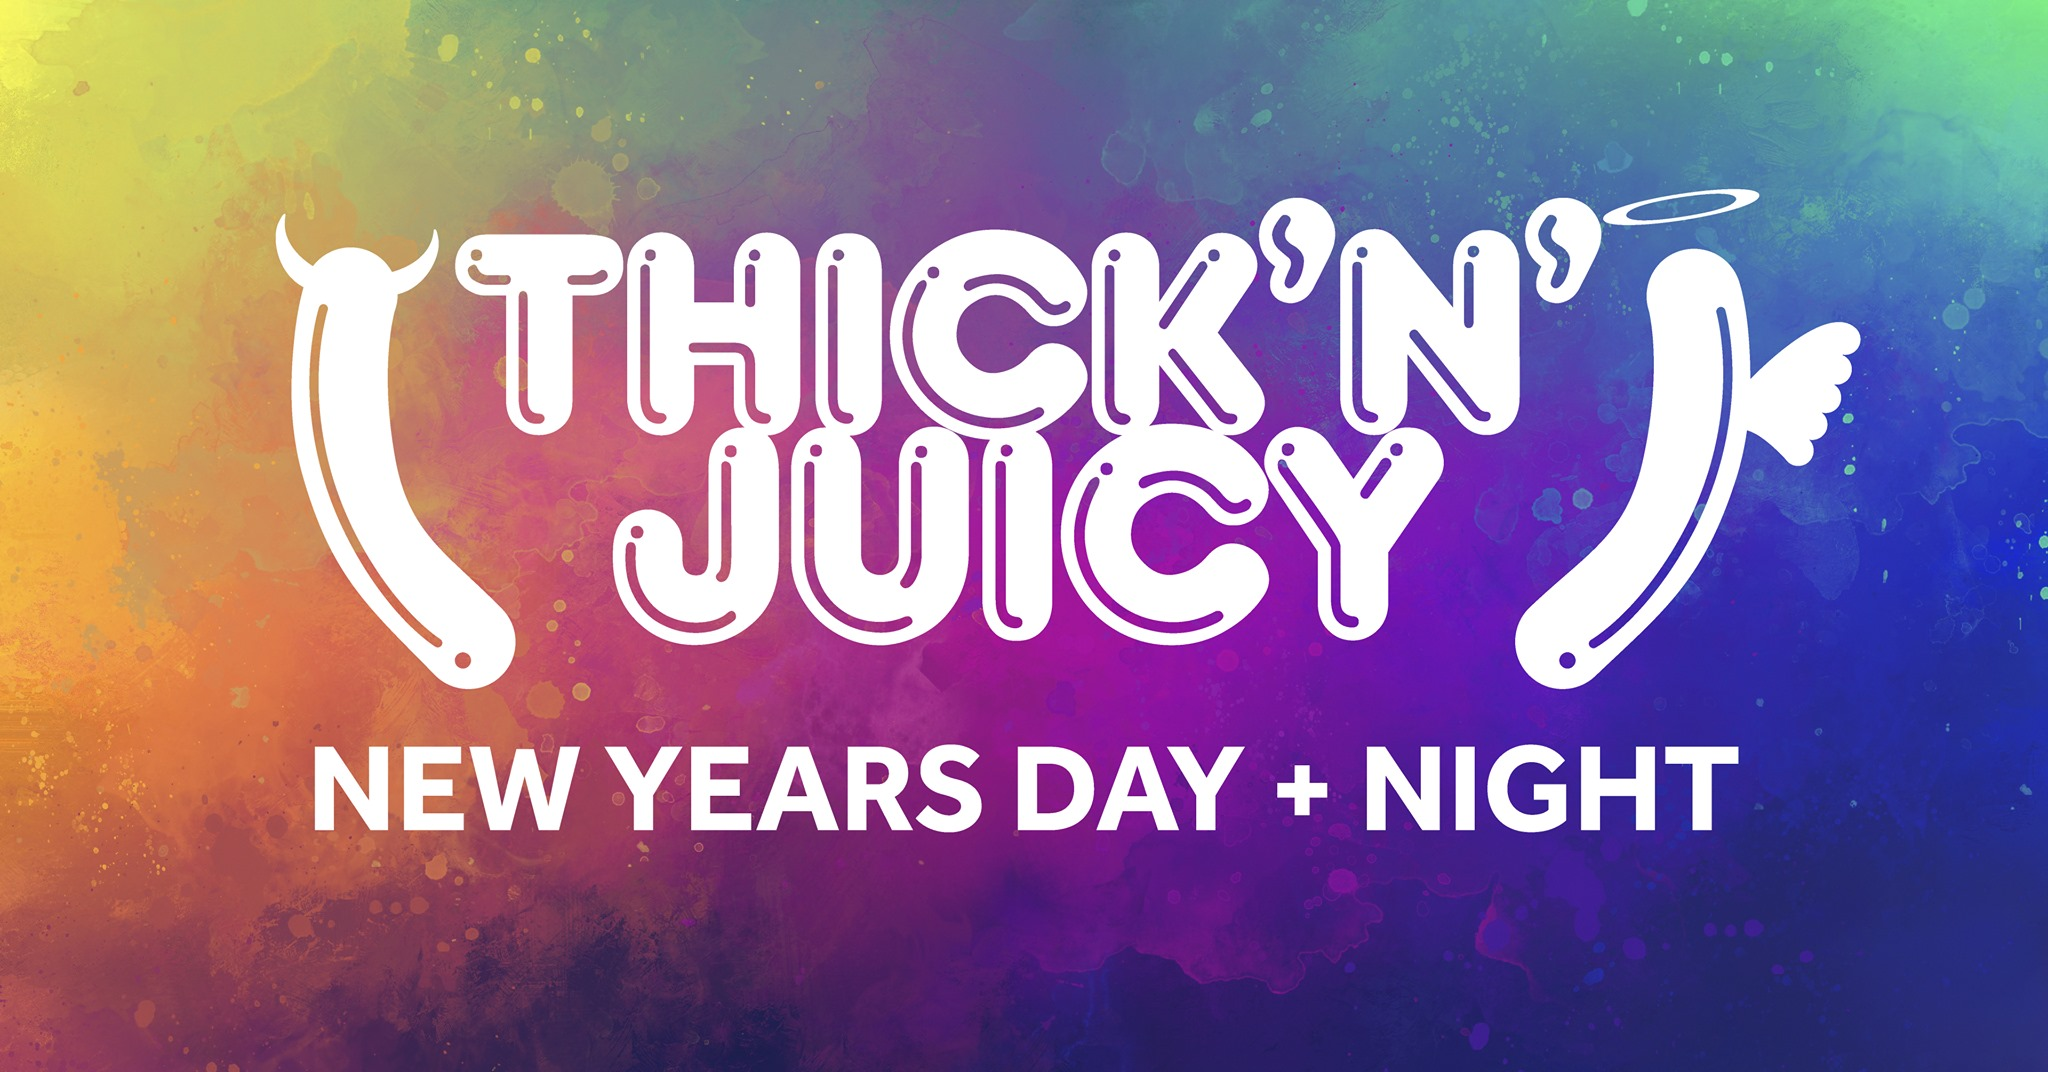 THICK 'N' JUICY Melbourne NYD